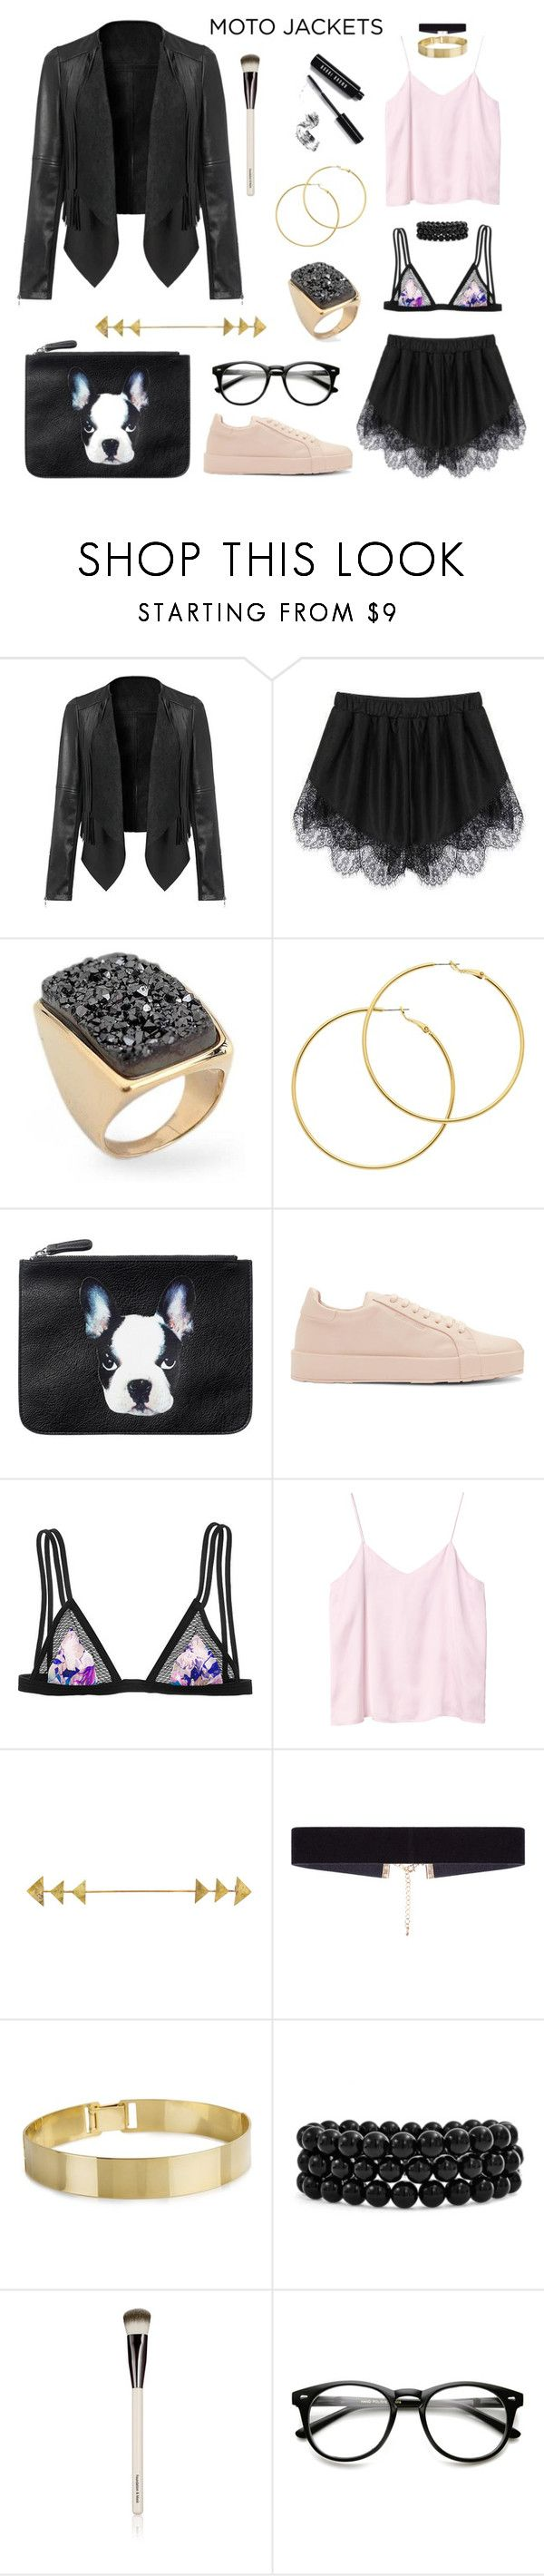 """Sexy Nerdy"" by cristina-daniela-munteanu ❤ liked on Polyvore featuring NOVICA, Melissa Odabash, Monki, Jil Sander, Victoria's Secret, 8 Other Reasons, Bling Jewelry, Chantecaille, Bobbi Brown Cosmetics and Pink"